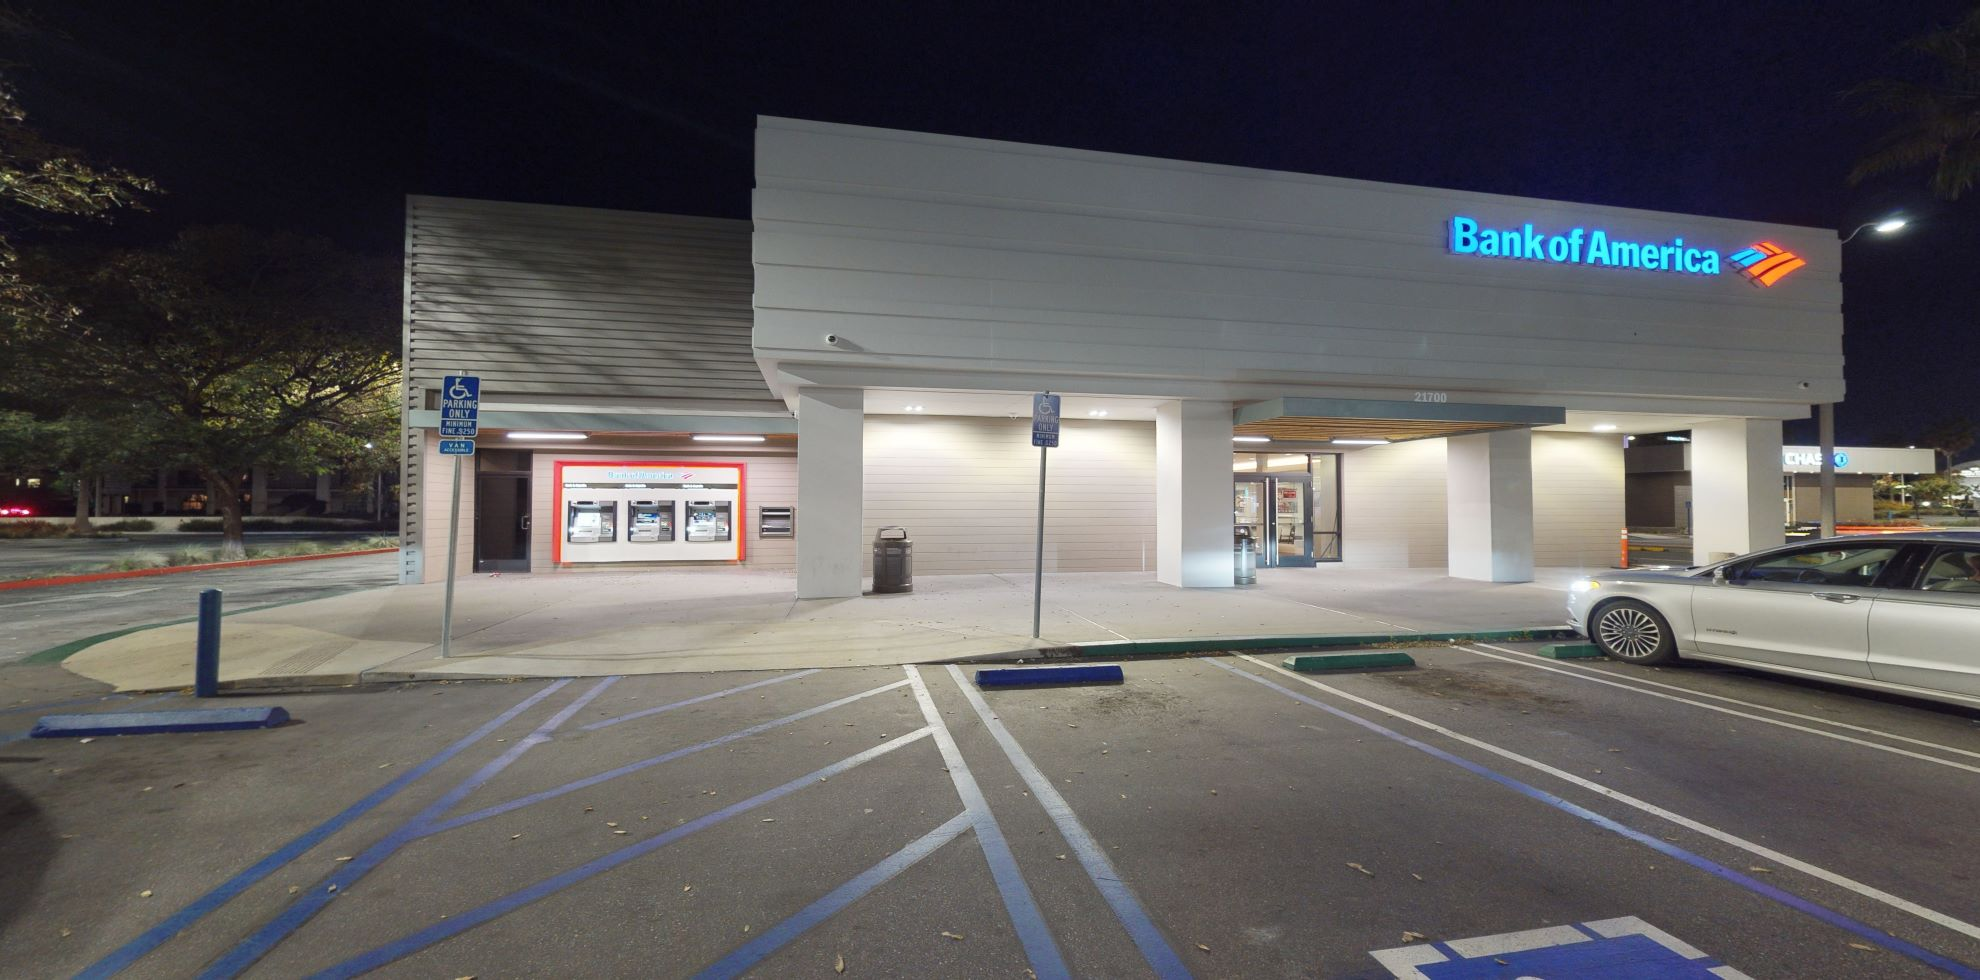 Bank of America financial center with walk-up ATM | 21700 Hawthorne Blvd, Torrance, CA 90503